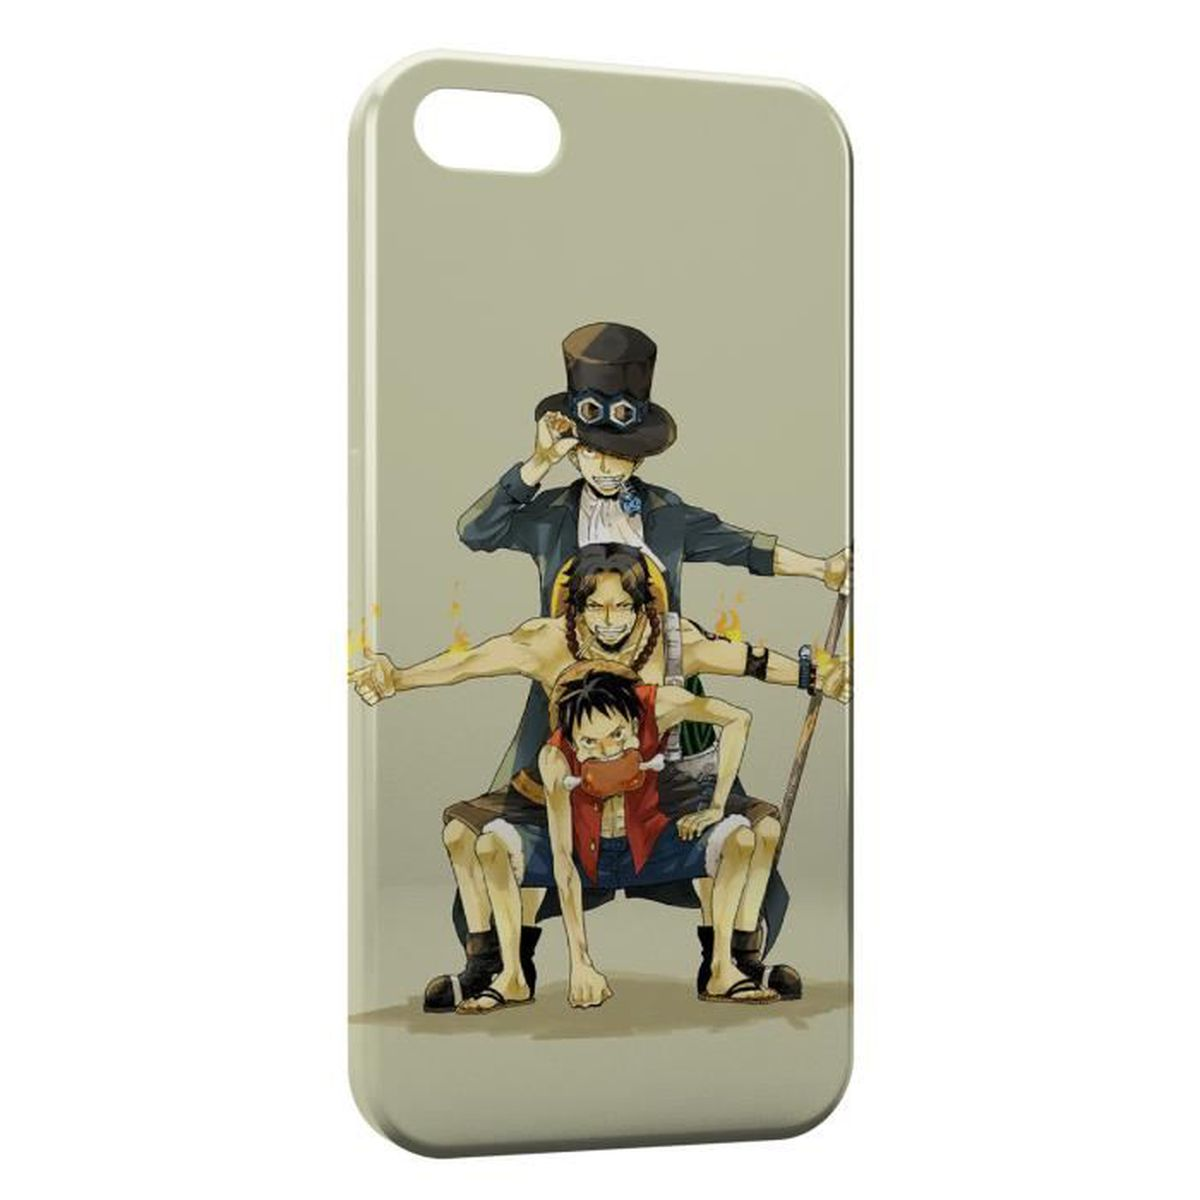 iphone 6 coque one piece